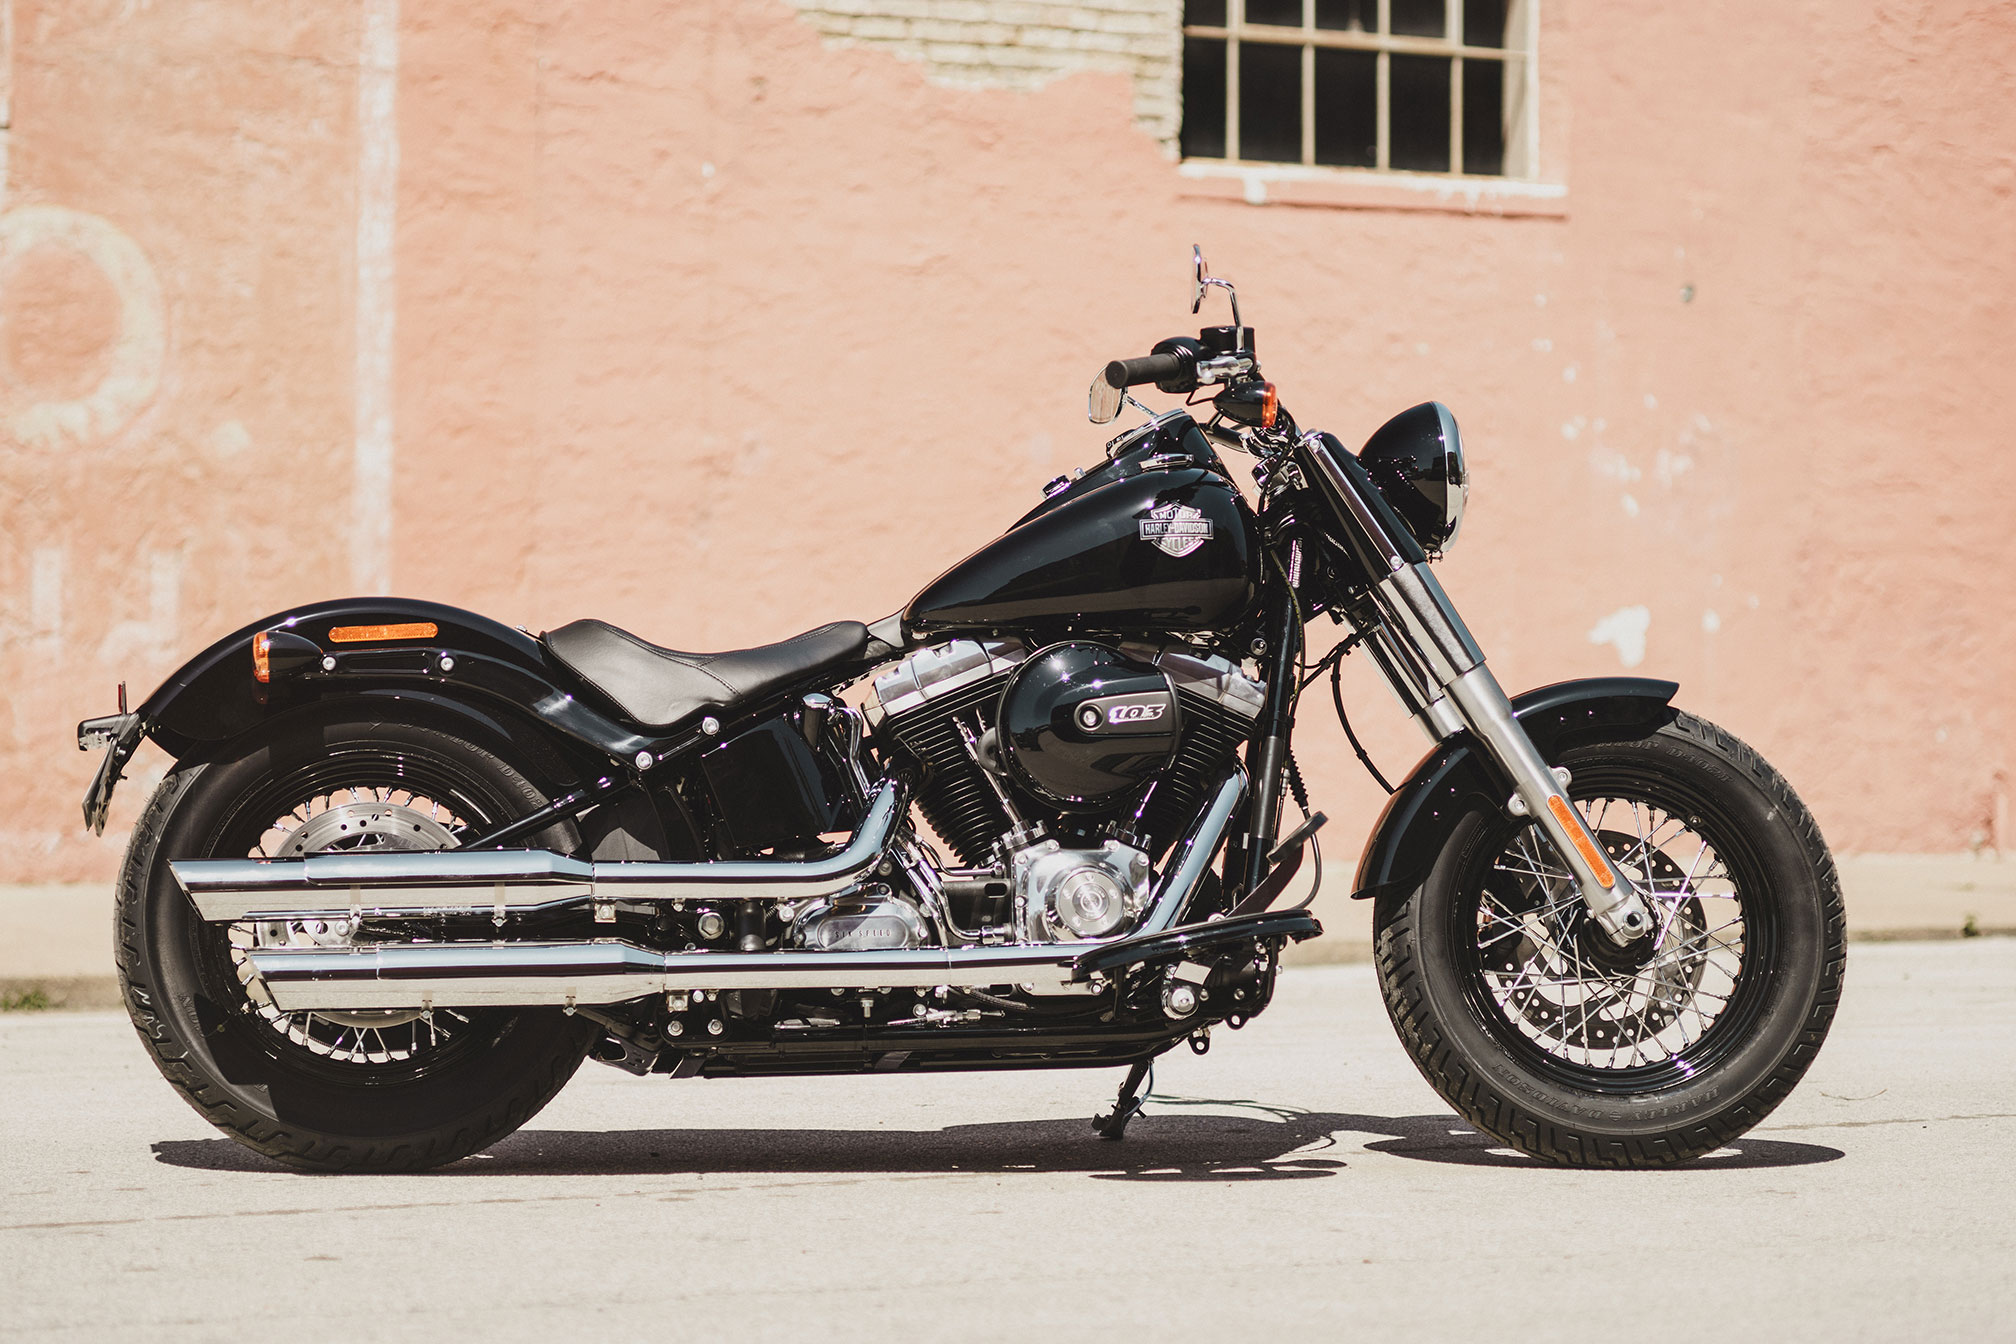 2016 Harley Davidson Softail Slim Review